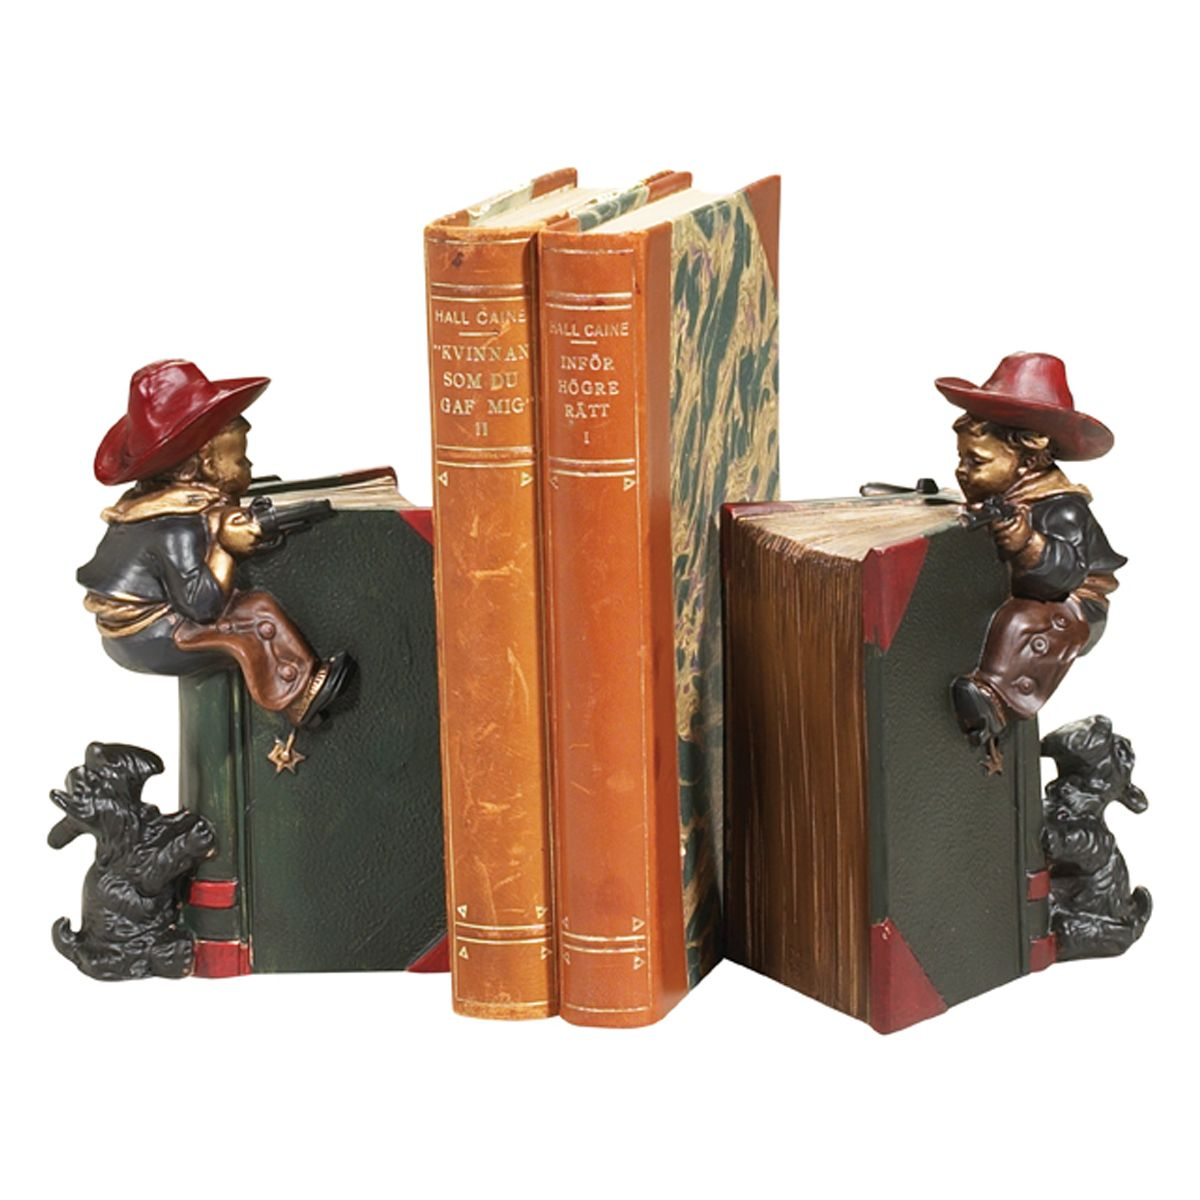 Climbing Cowboy Bookends